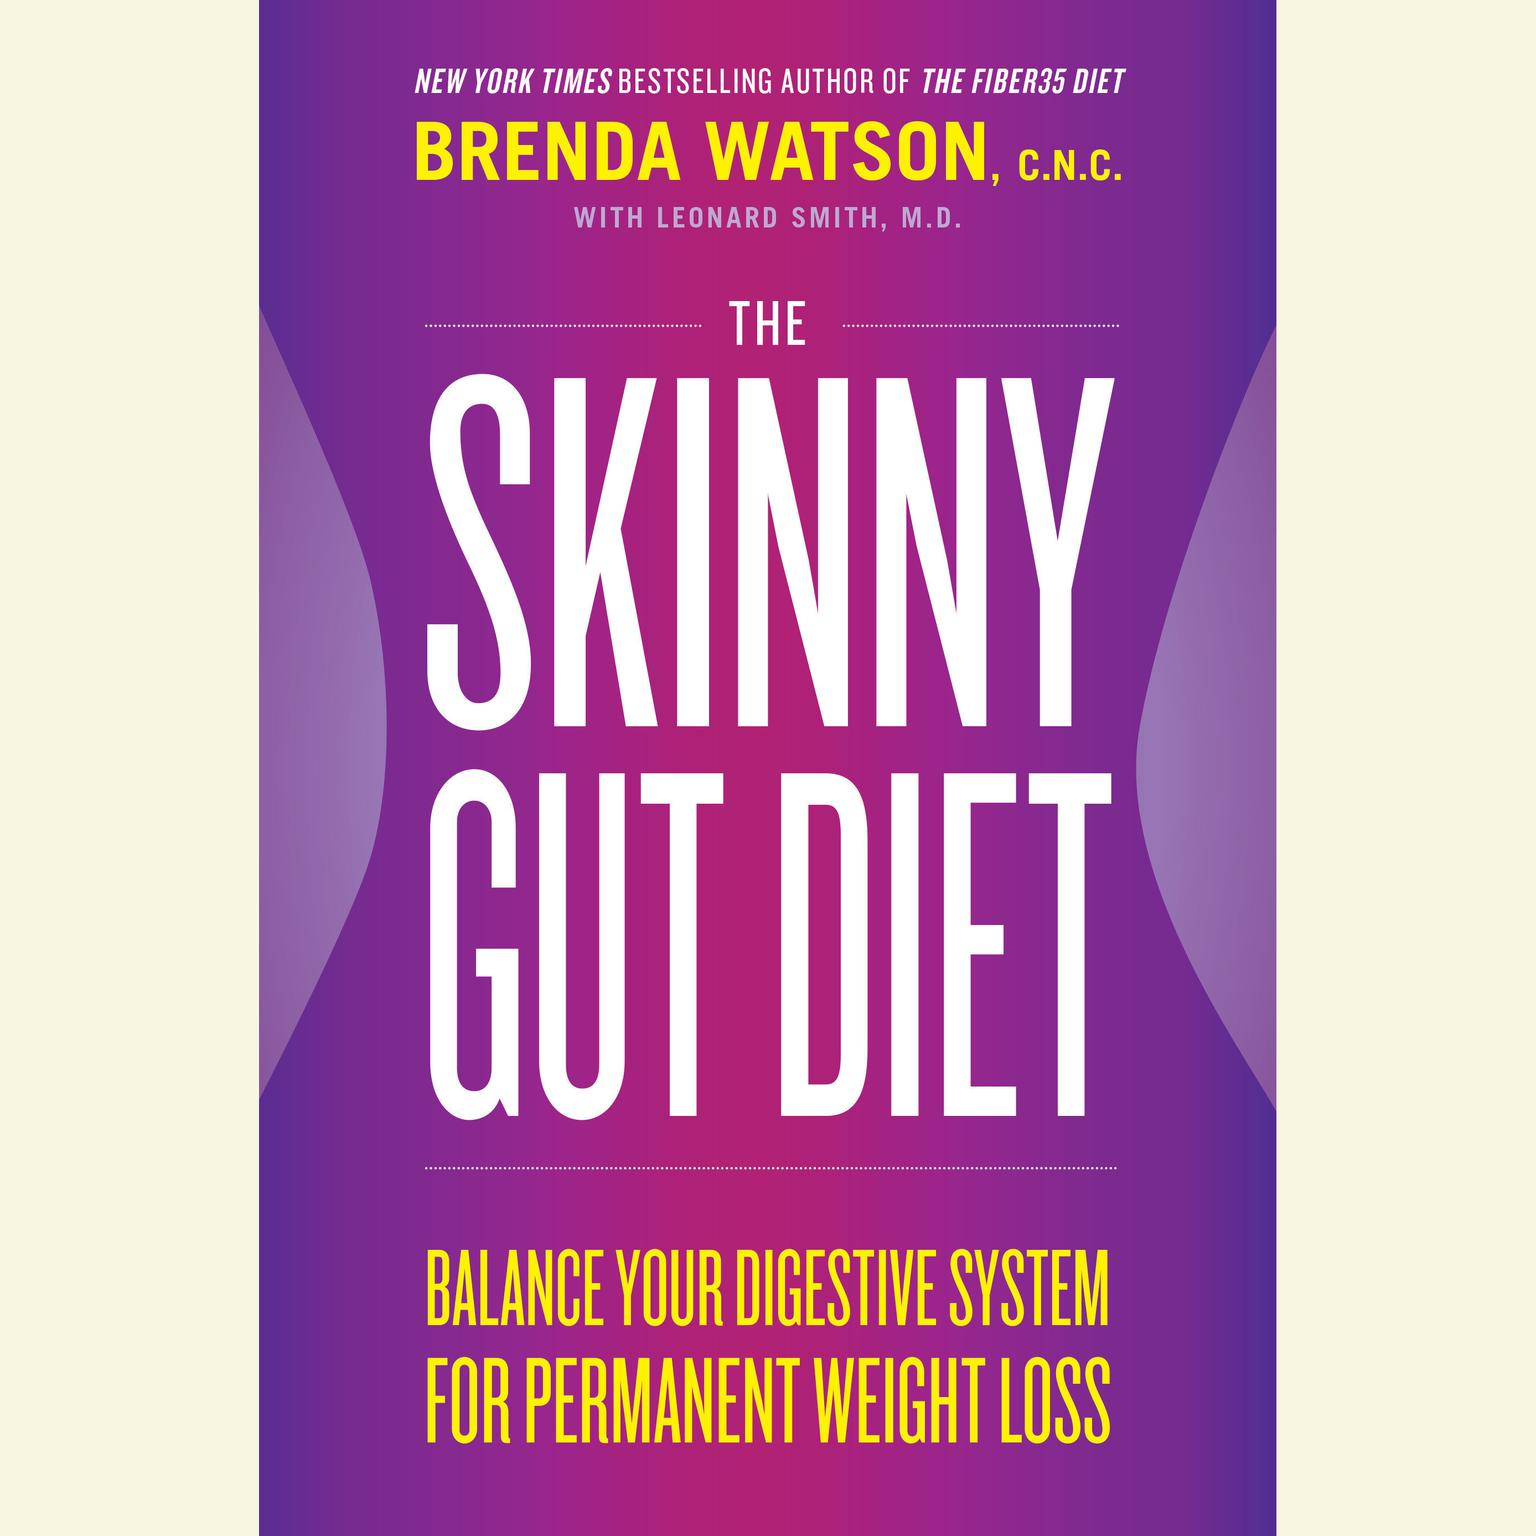 Printable The Skinny Gut Diet: Balance Your Digestive System for Permanent Weight Loss Audiobook Cover Art